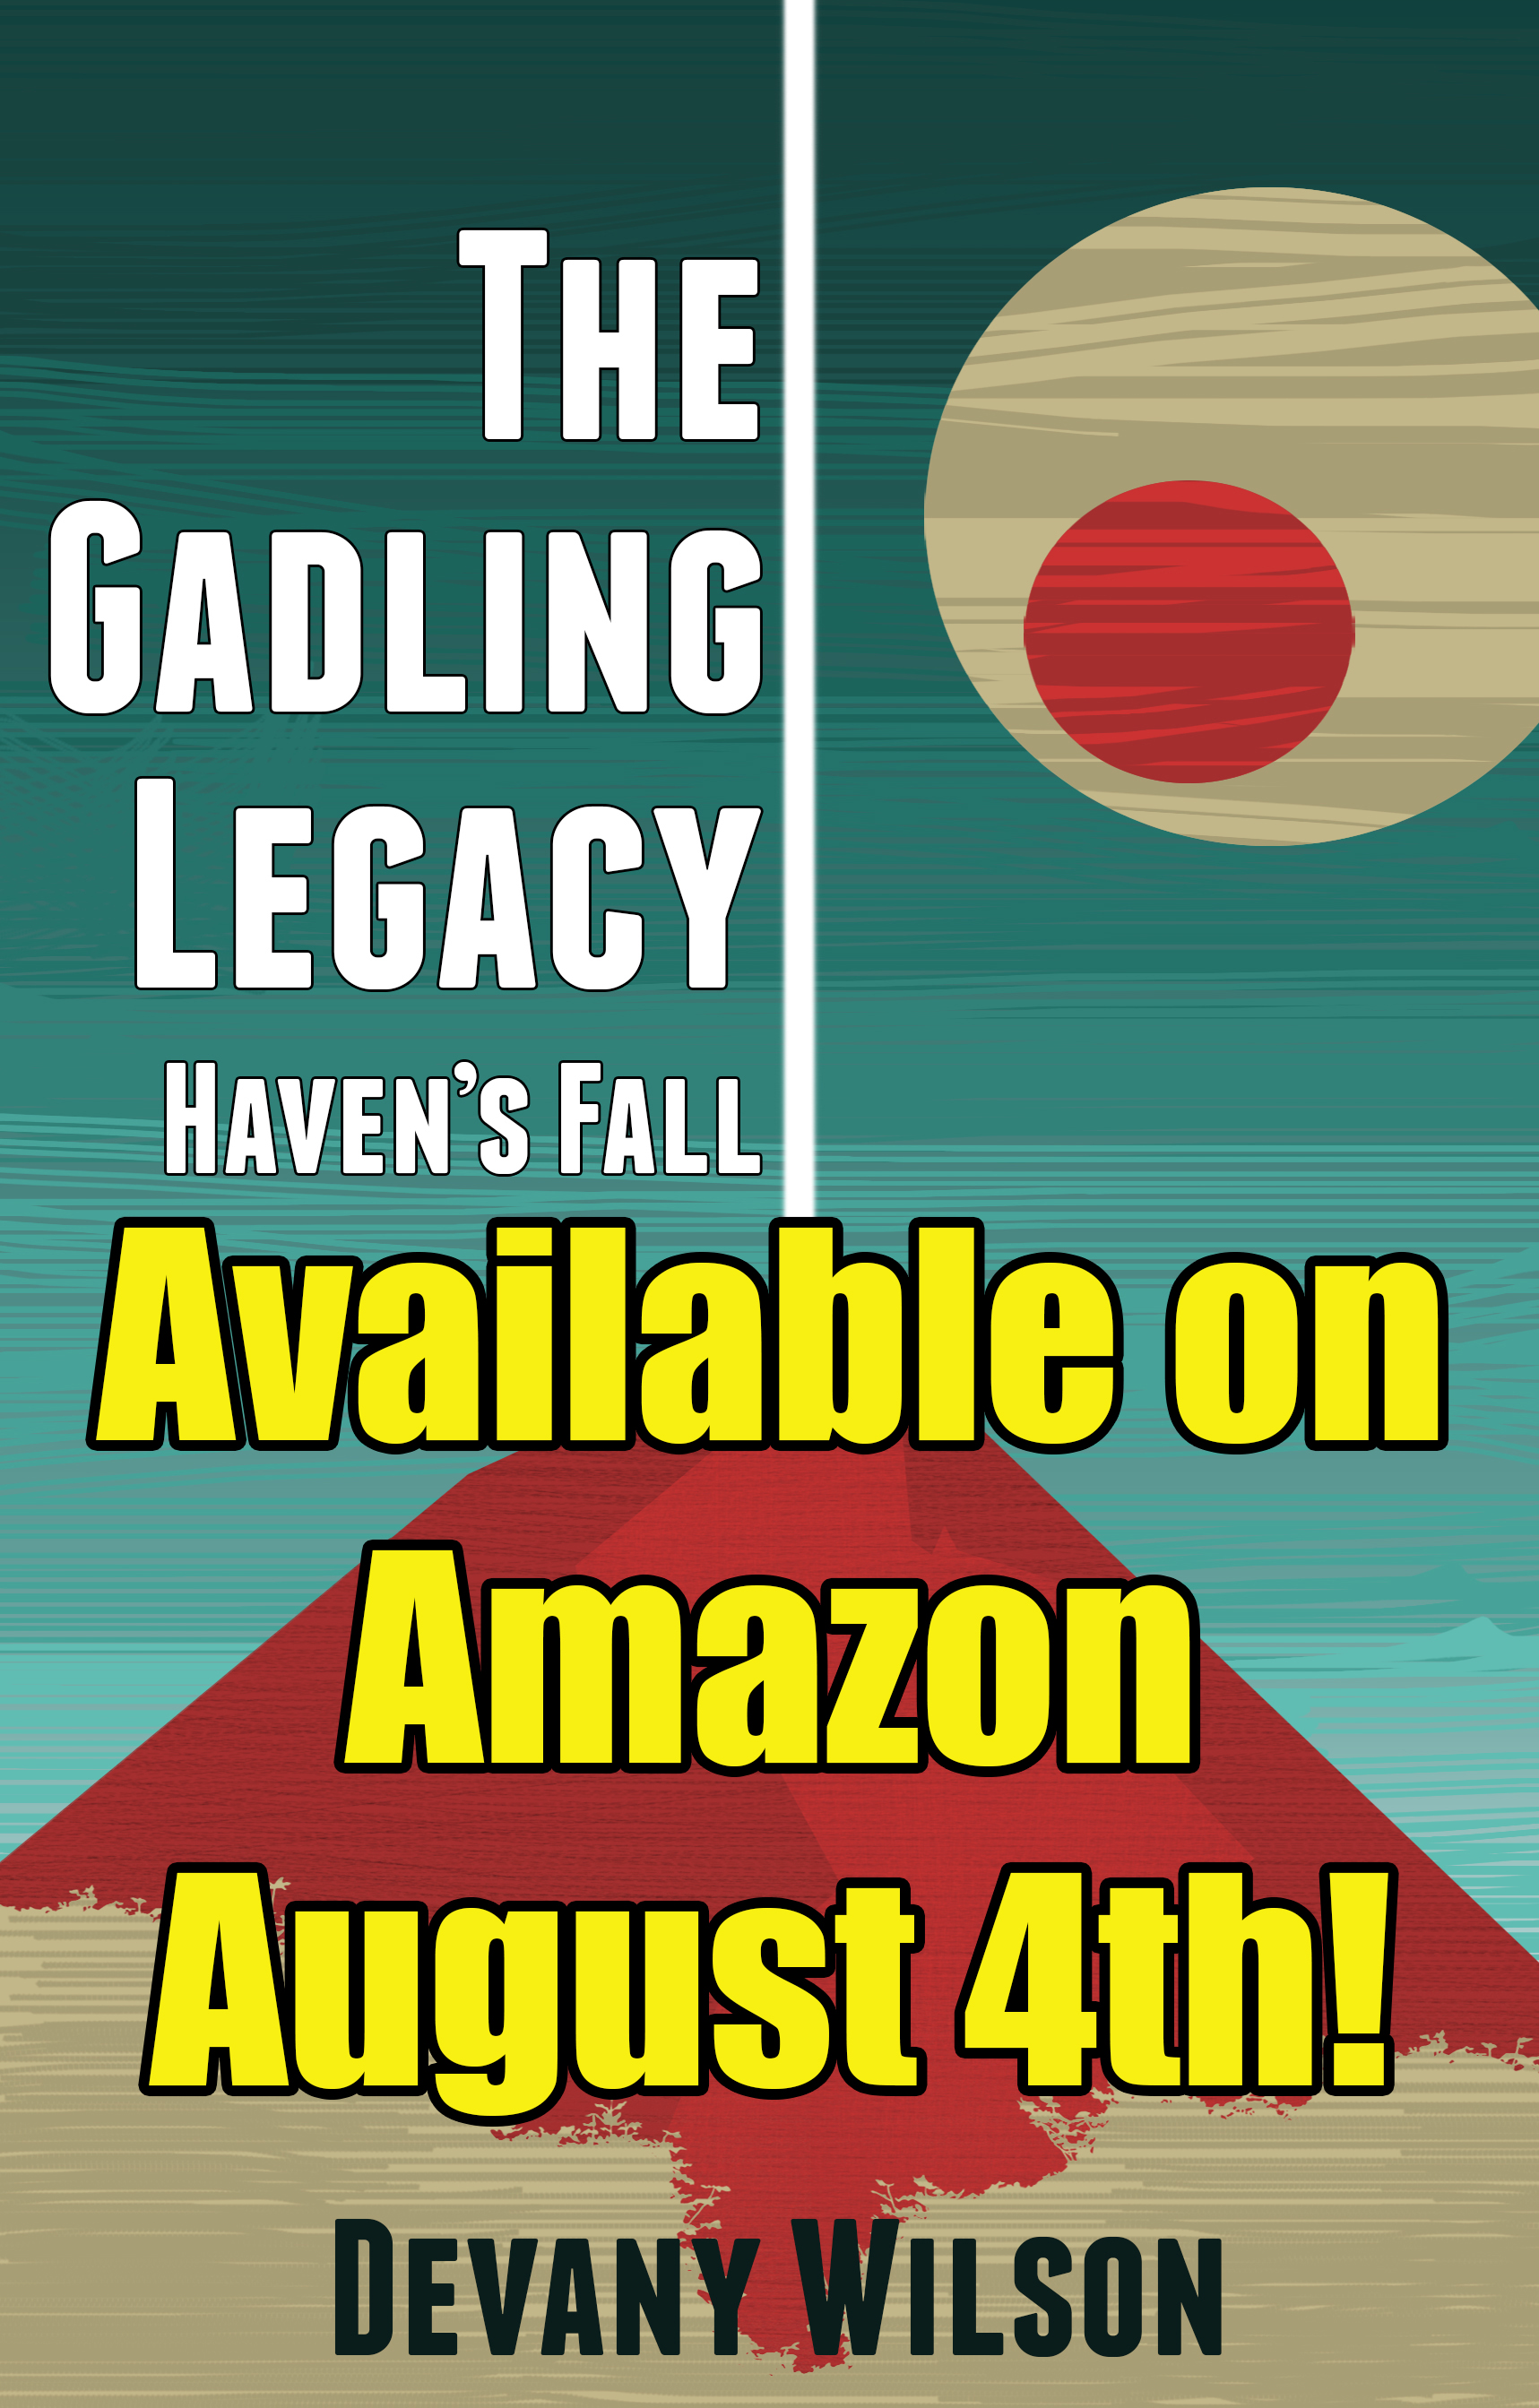 The Gadling Legacy: Haven's Fall, Pre-Order Your eBook Today